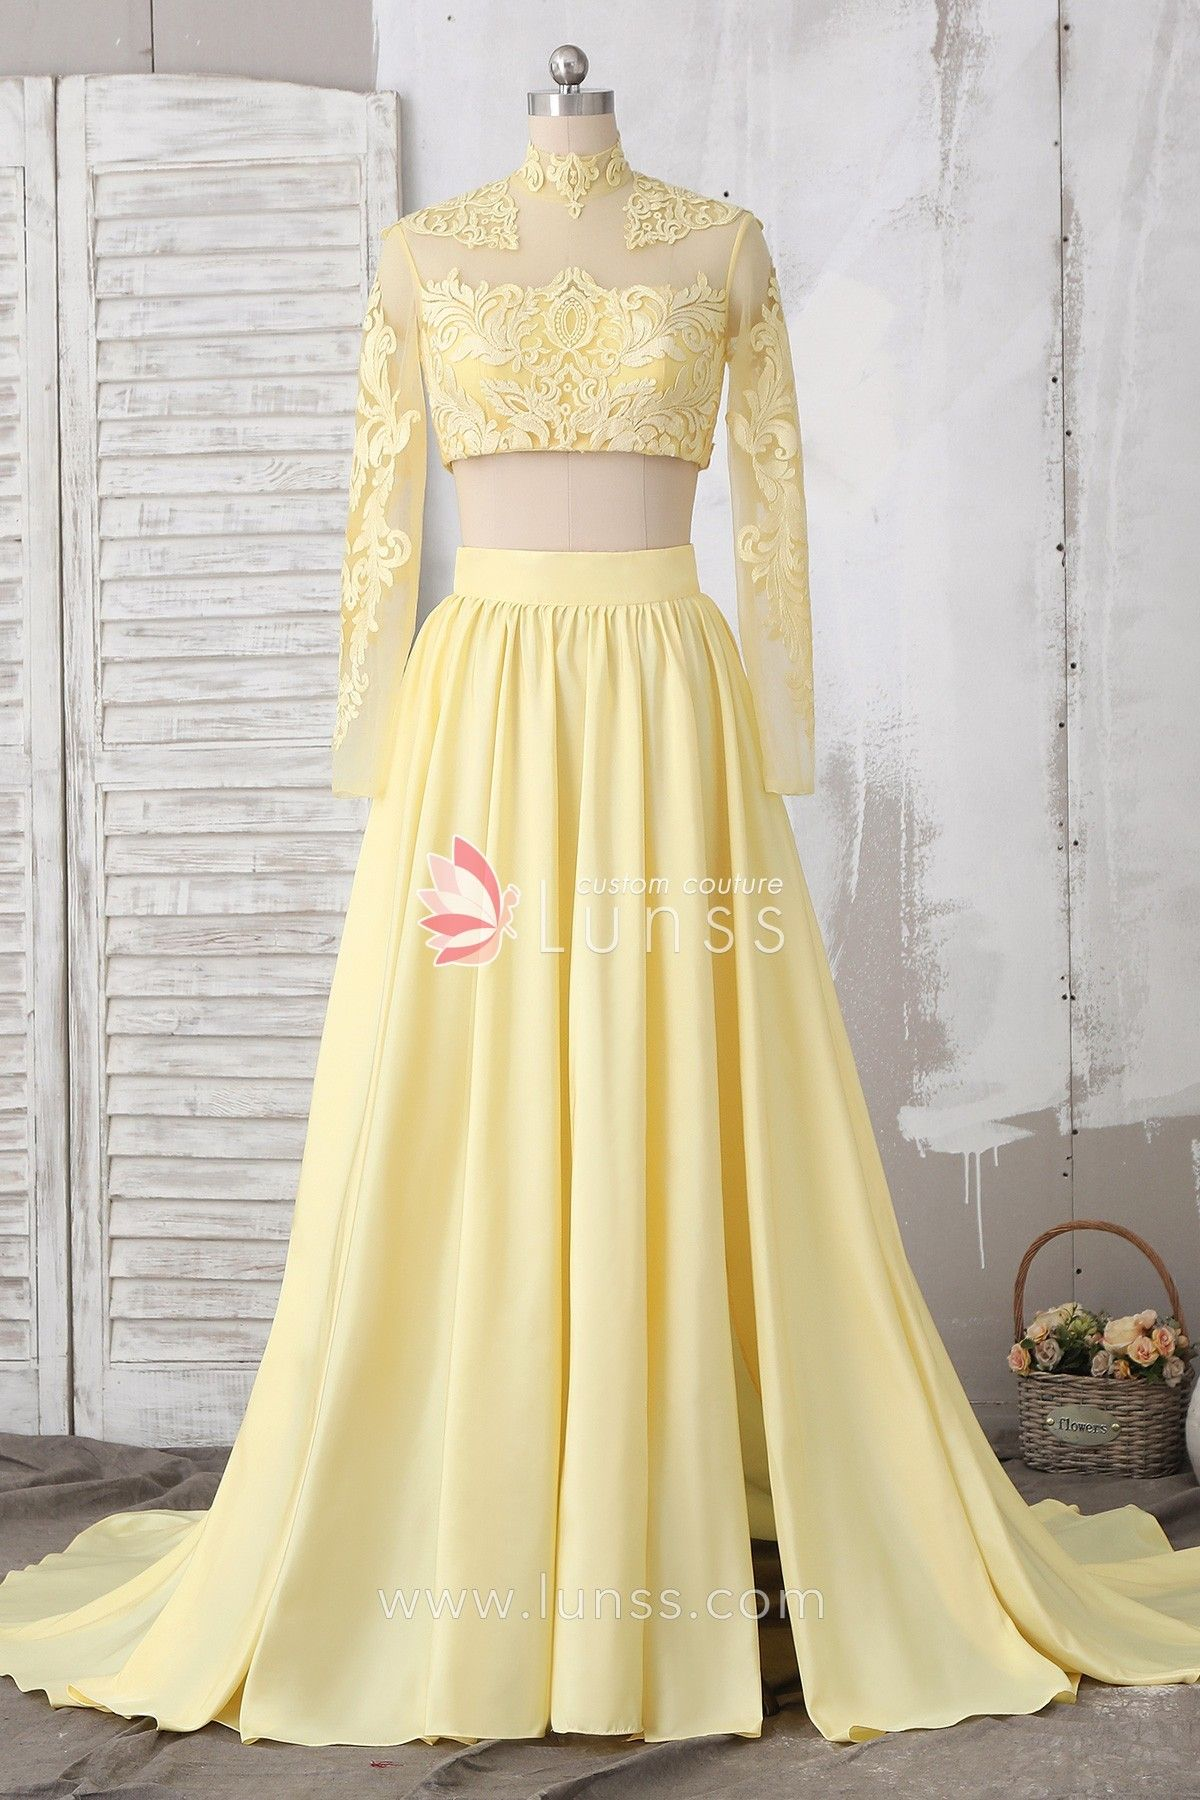 Daffodil illusion twopiece long sleeve lace taffeta homecoming